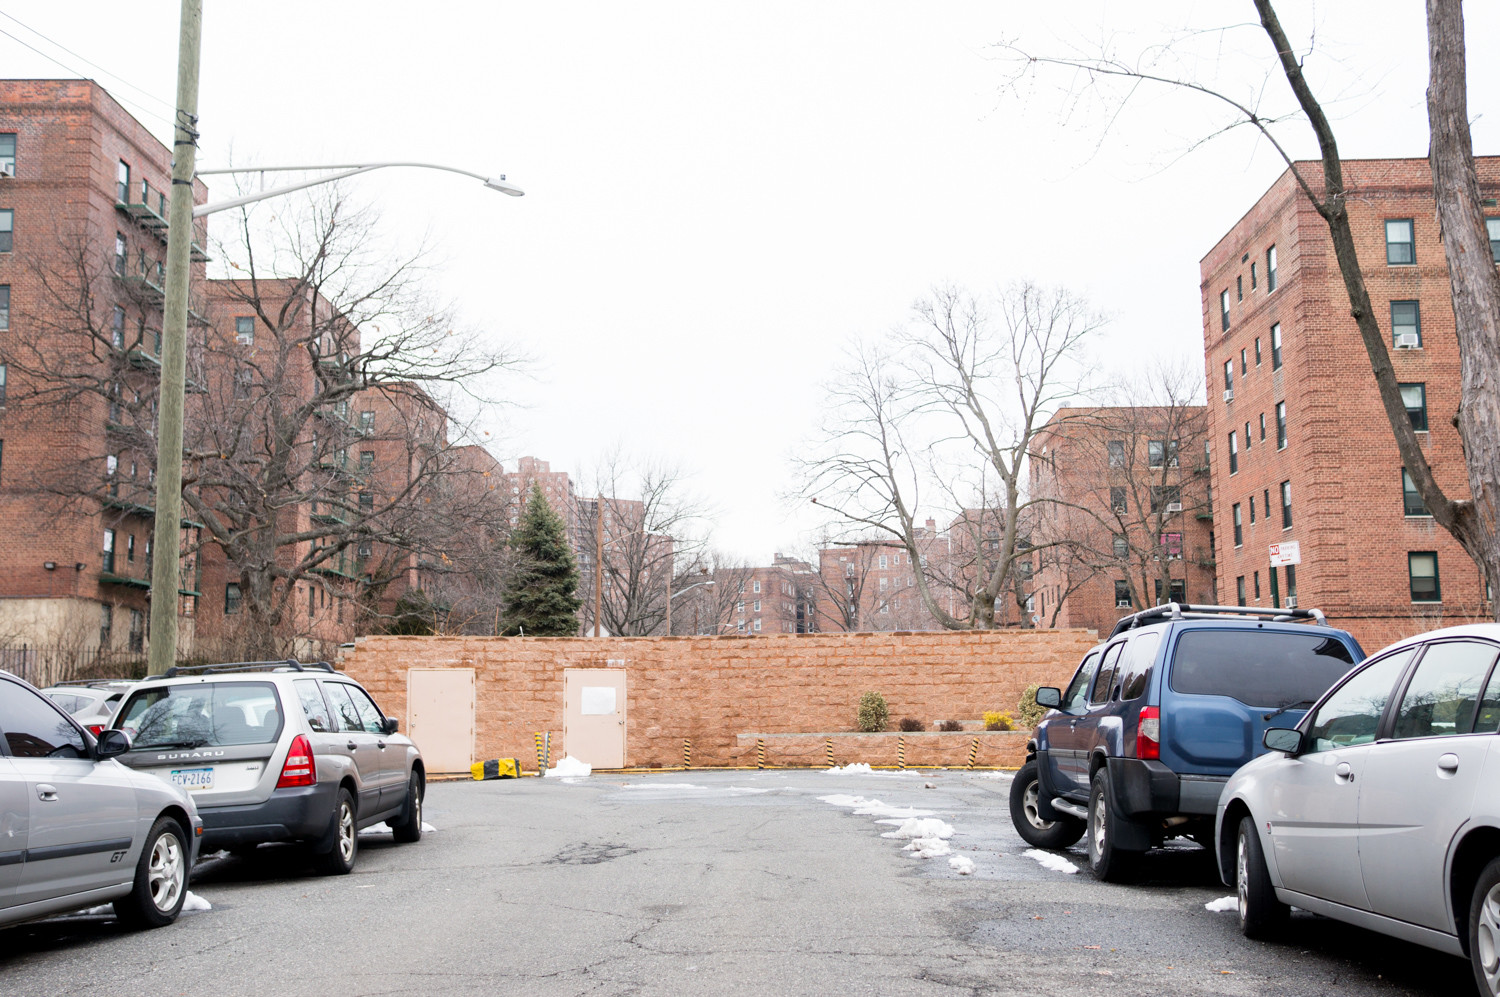 A solid cinder block wall separates two residential complexes on Netherland Avenue between West 254th and West 256th streets. Community Board 8's traffic and transportation committee has rejected an idea to cut a hole through the wall, allowing pedestrians to pass through.